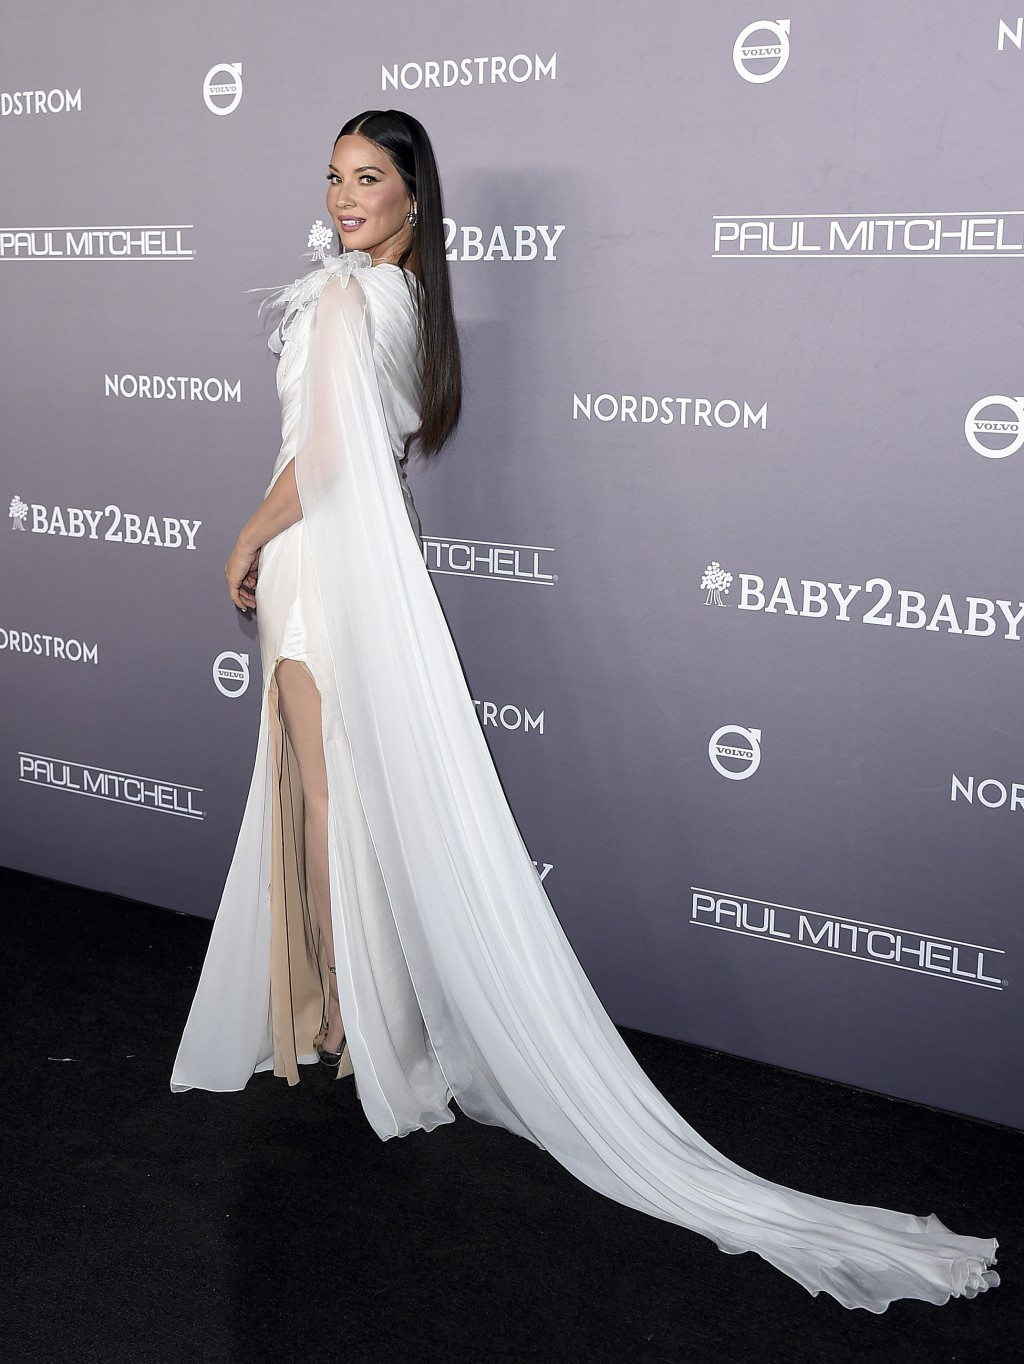 Olivia Munn arrives at the 2019 Baby2Baby Gala on Saturday, Nov. 9, 2019, in Culver City, Calif. (Photo by Jordan Strauss/Invision/AP)